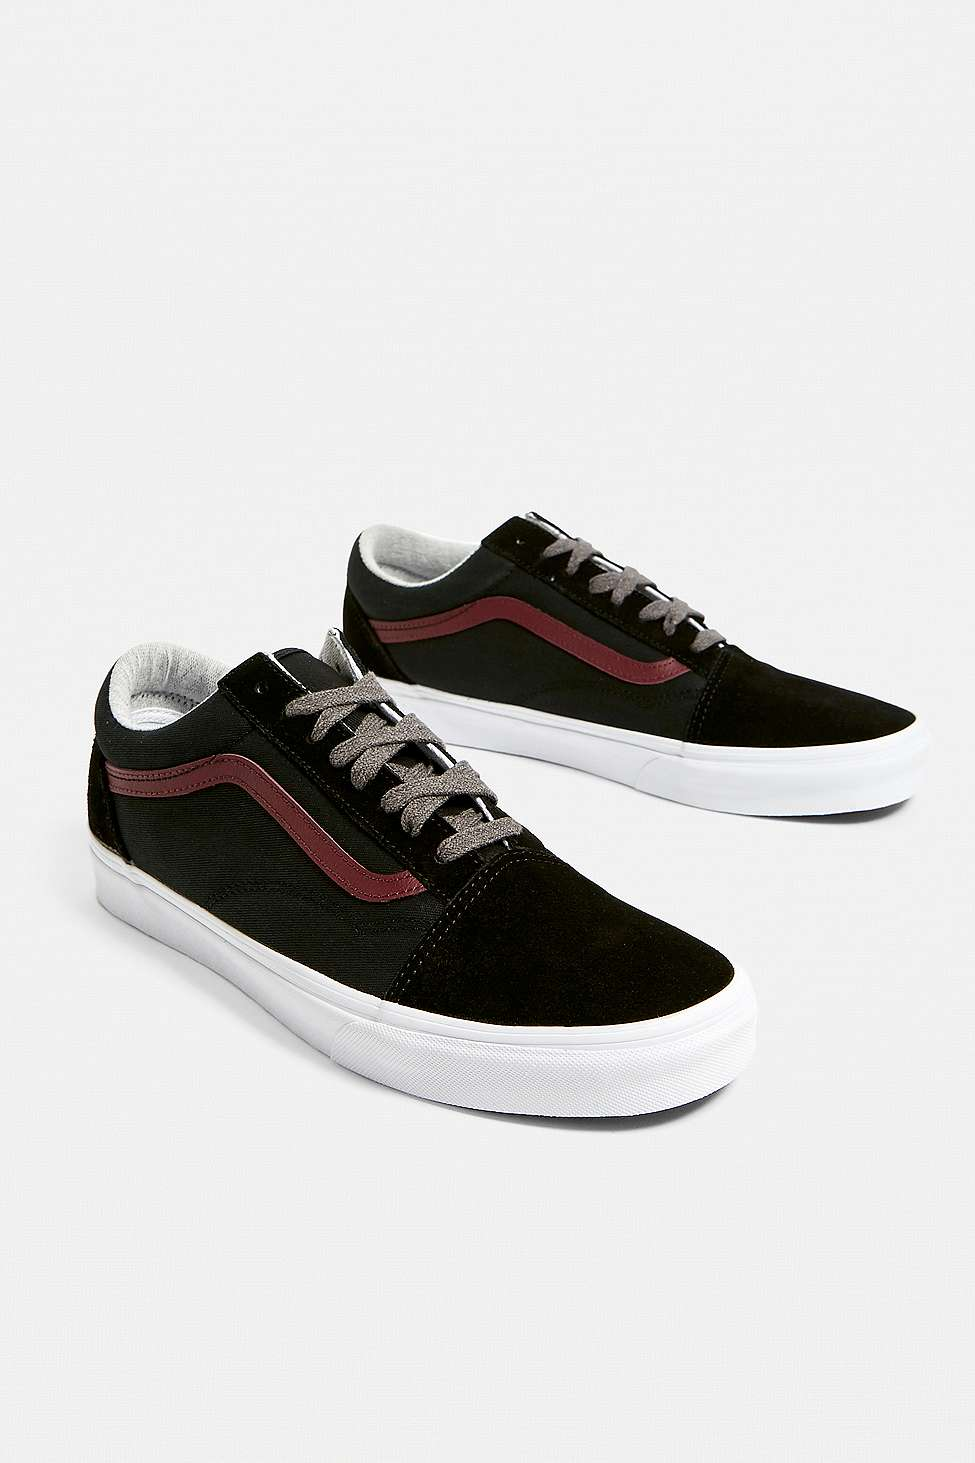 Vans Old Skool Black And Port Trainers Urban Outfitters Uk